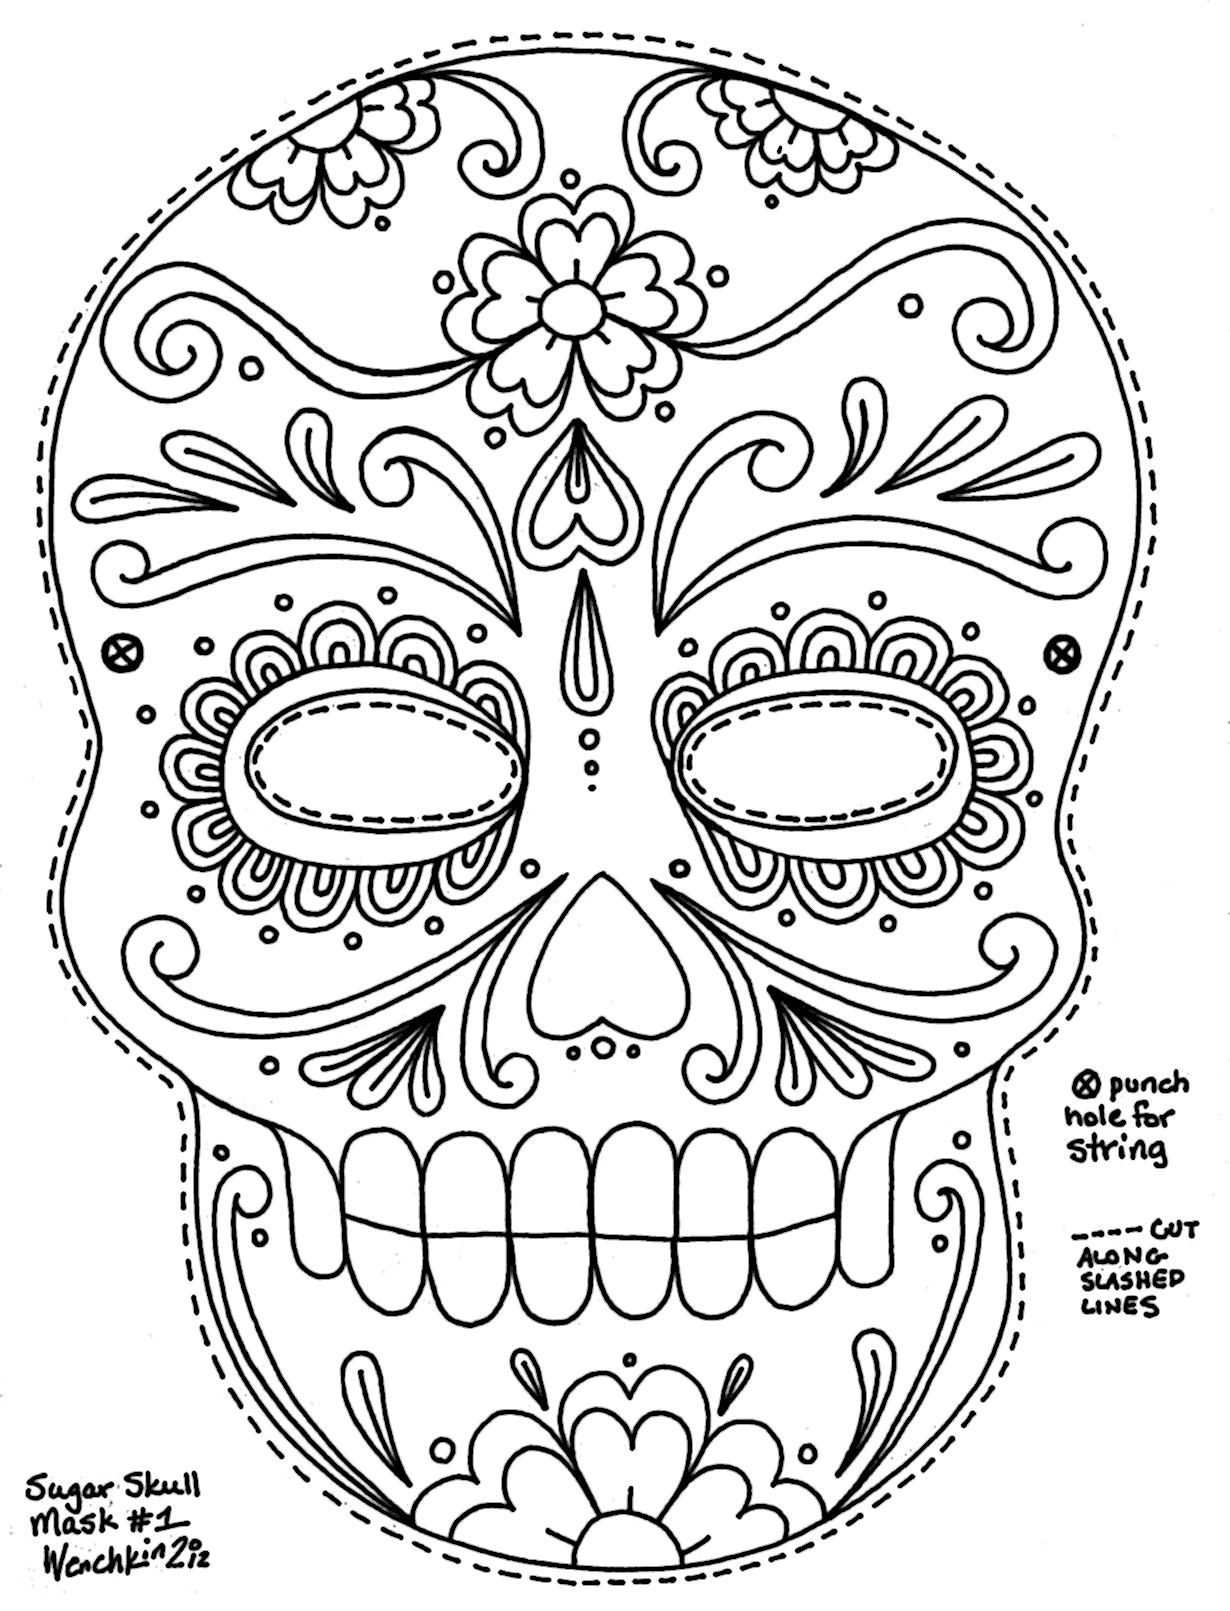 1230x1611 Mask Coloring Pages Download Marvelous Masks Ribsvigyapan Mask